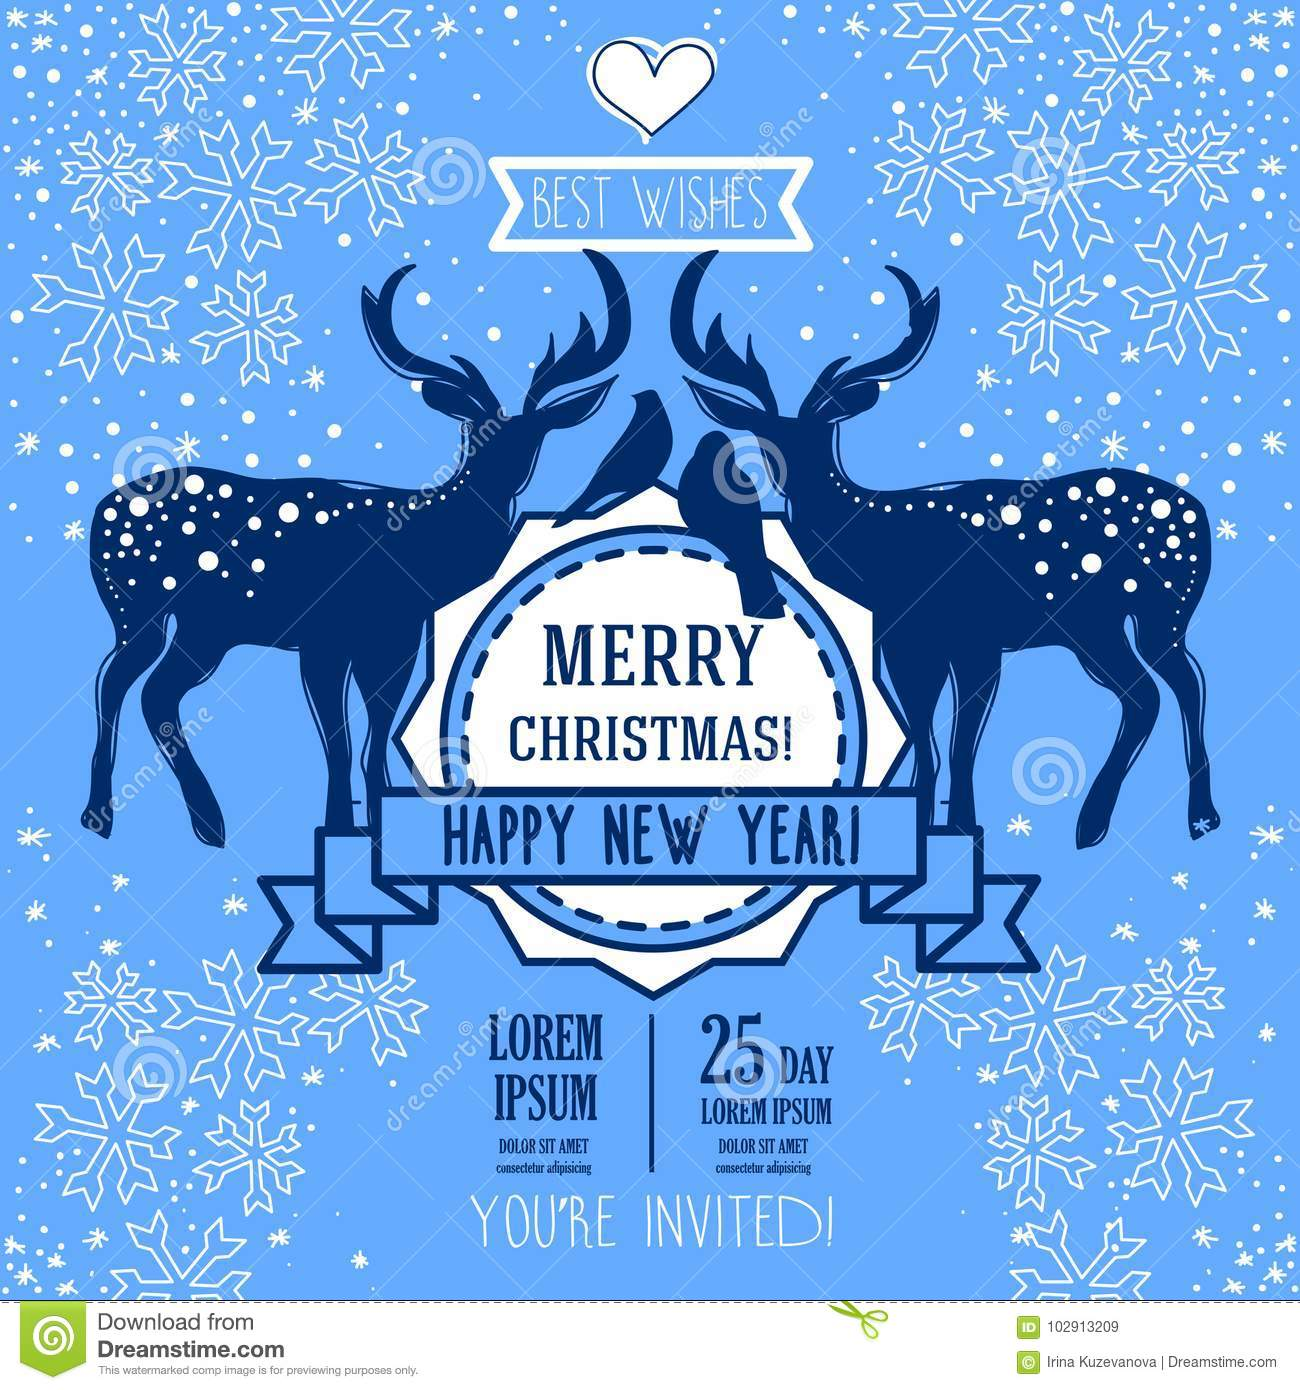 greeting card for christmas and happy new year with couple of christmas deer and birds